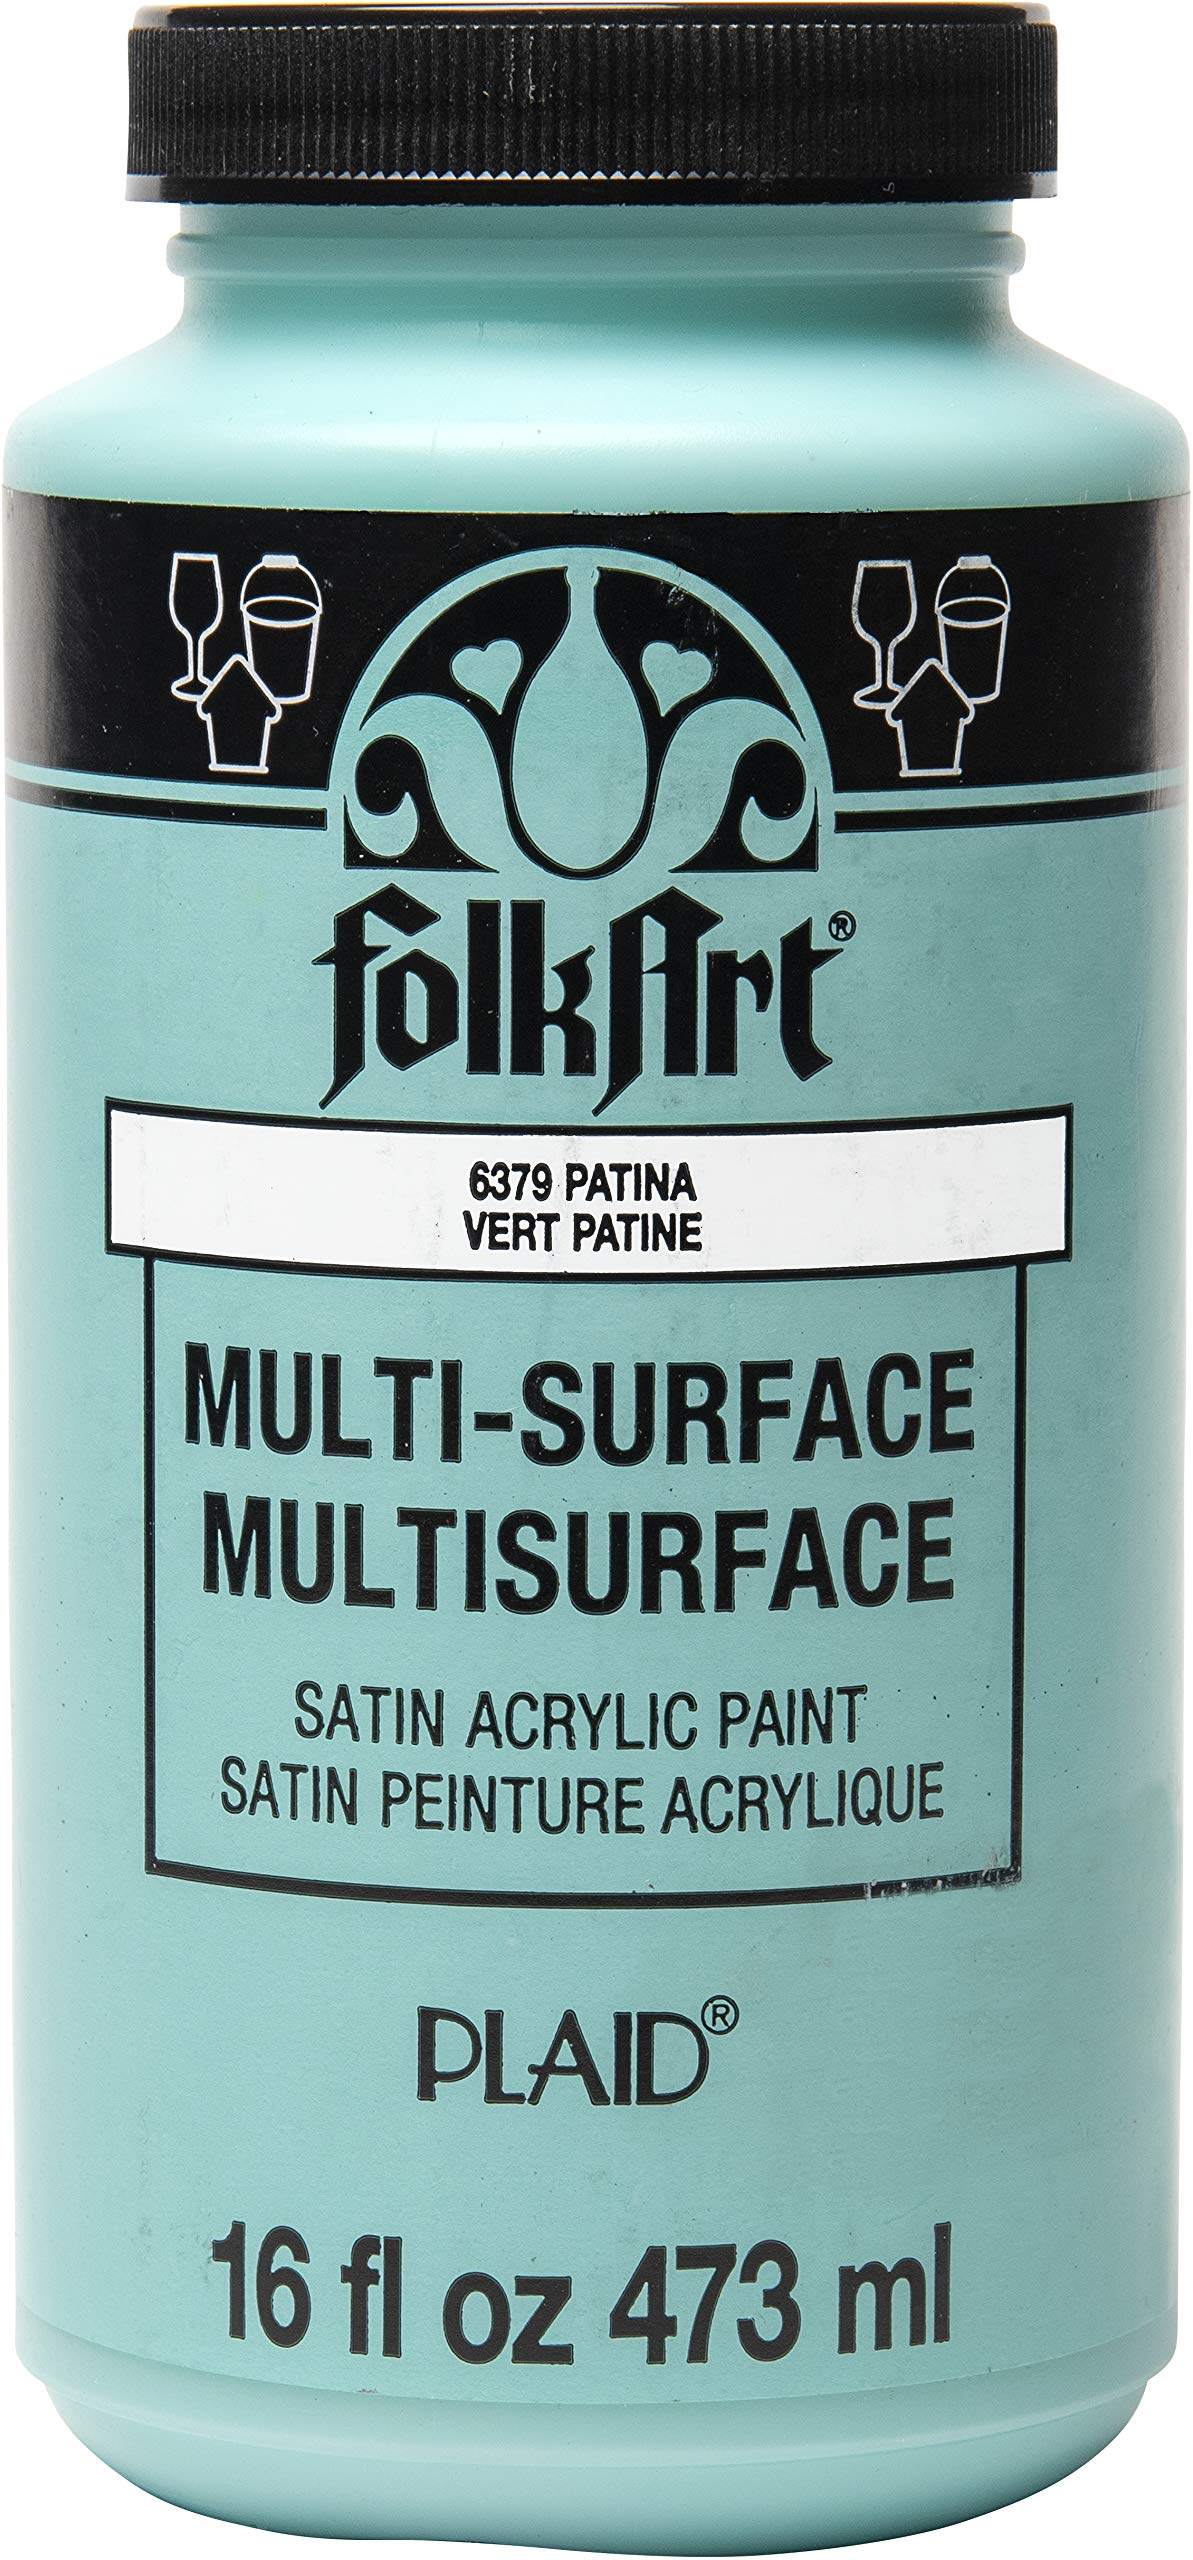 FolkArt Multi-Surface Satin Acrylic Paint in Assorted Colors, 16 oz, Patina 16 Fl Oz